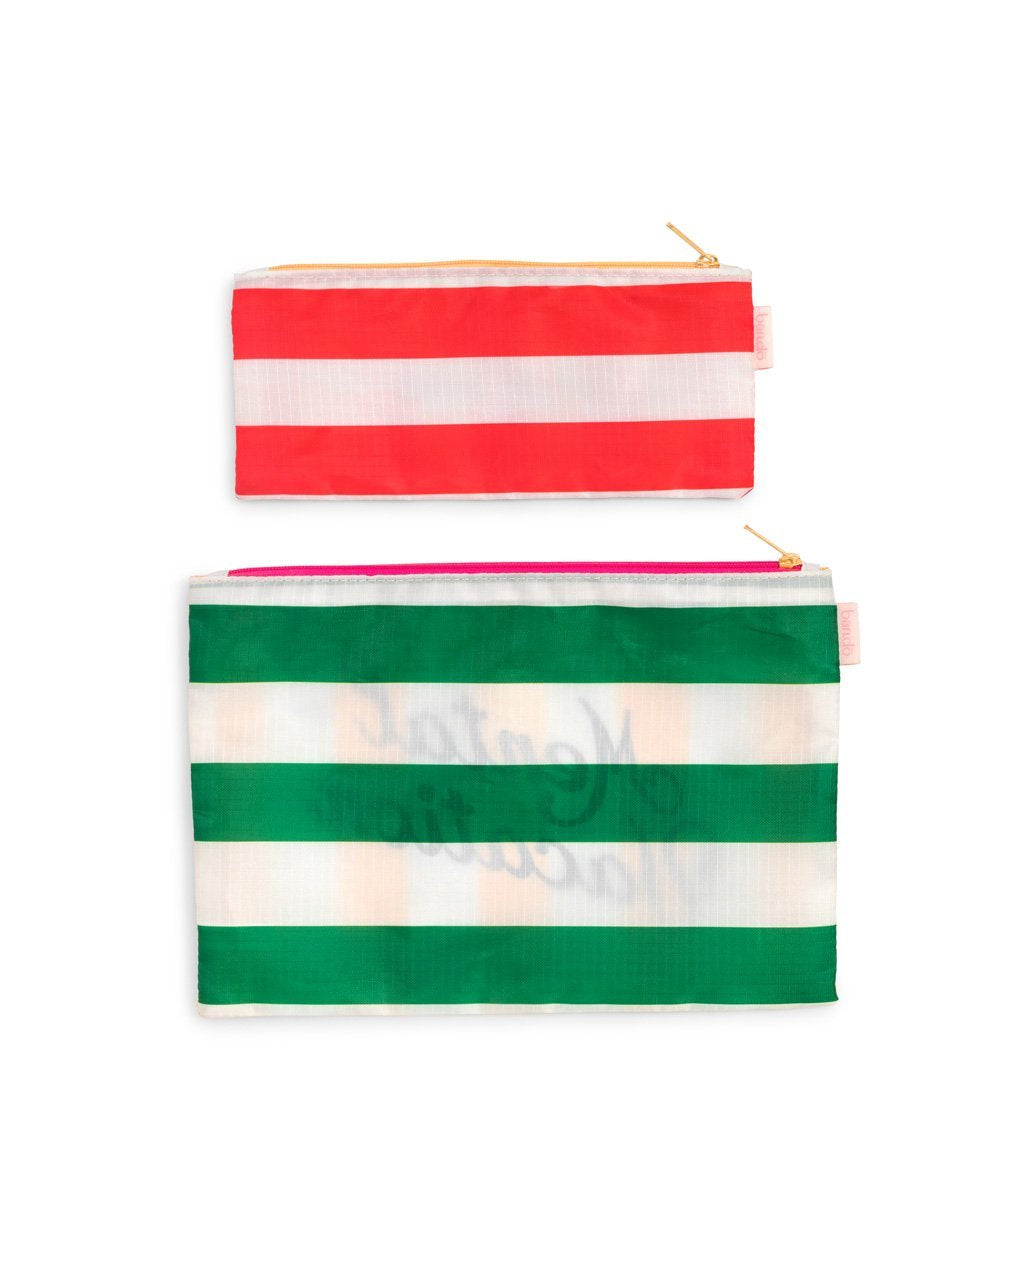 Alternative side with horizontal stripes, large with green club stripe and small with a red club stripe